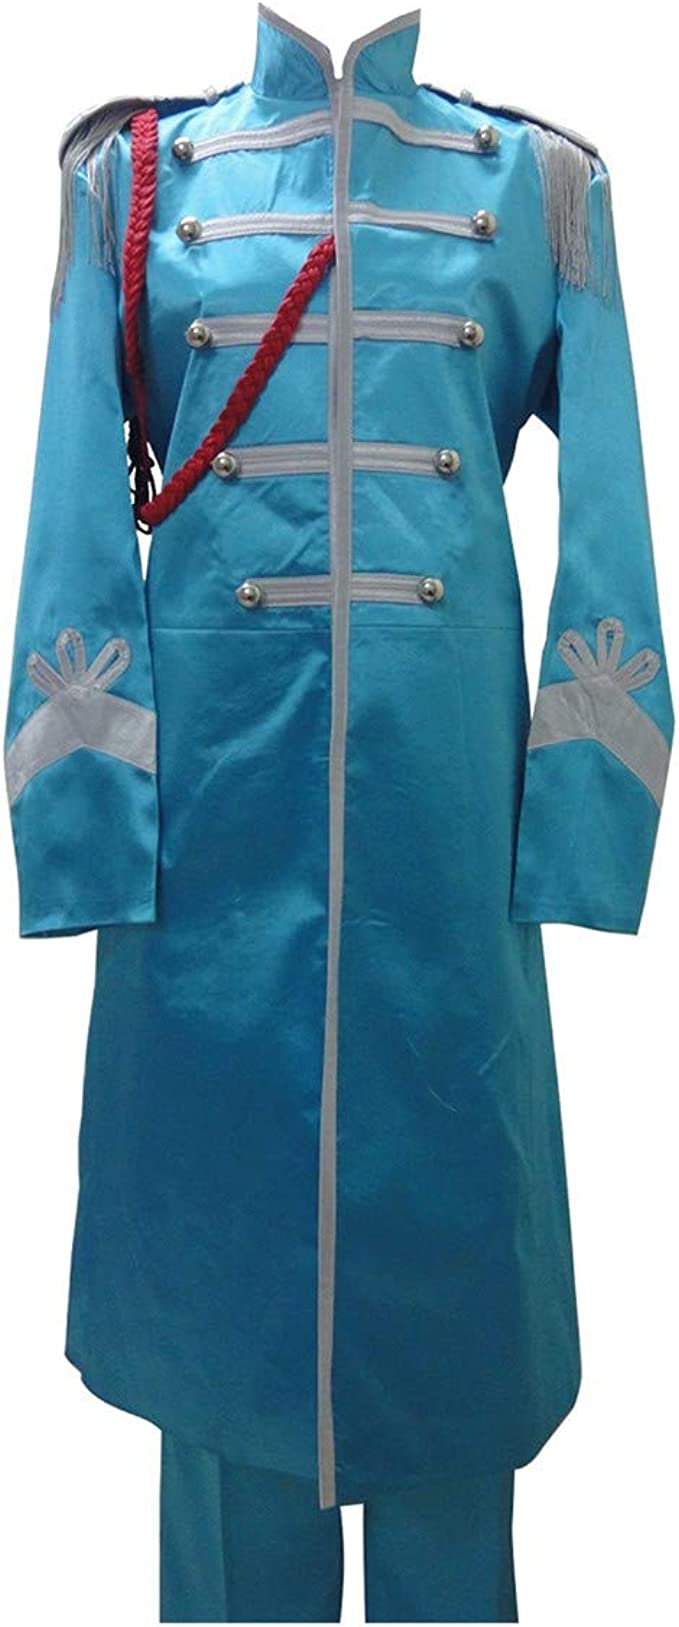 Amazon Com Lvcos Sgt Pepper S Lonely Hearts Club Band Paul Mccartney Costume Clothing